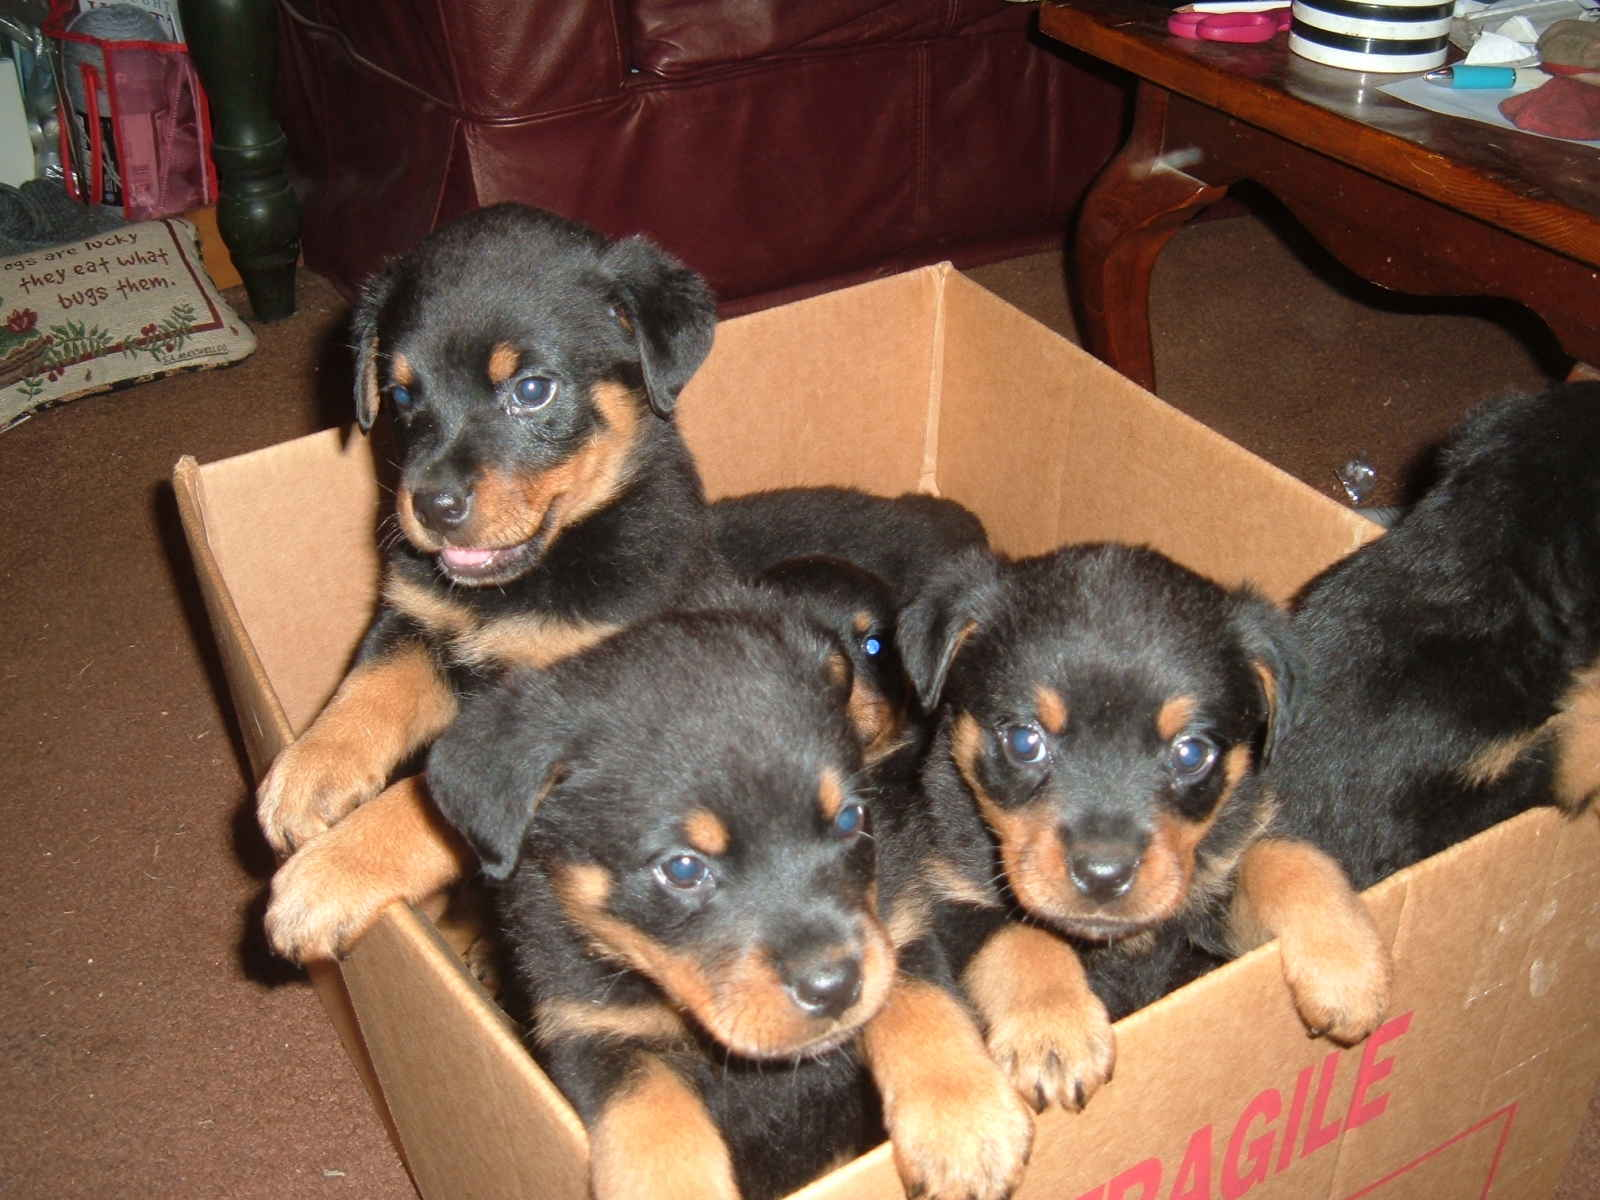 five cute Rottweiler puppies playing in card box, cute baby Rottweilers